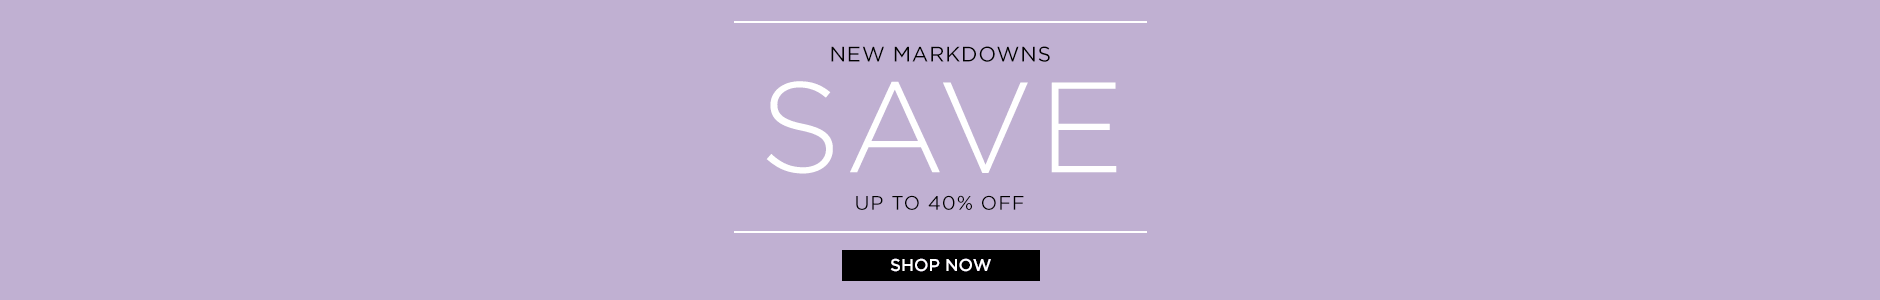 Sale New Markdowns